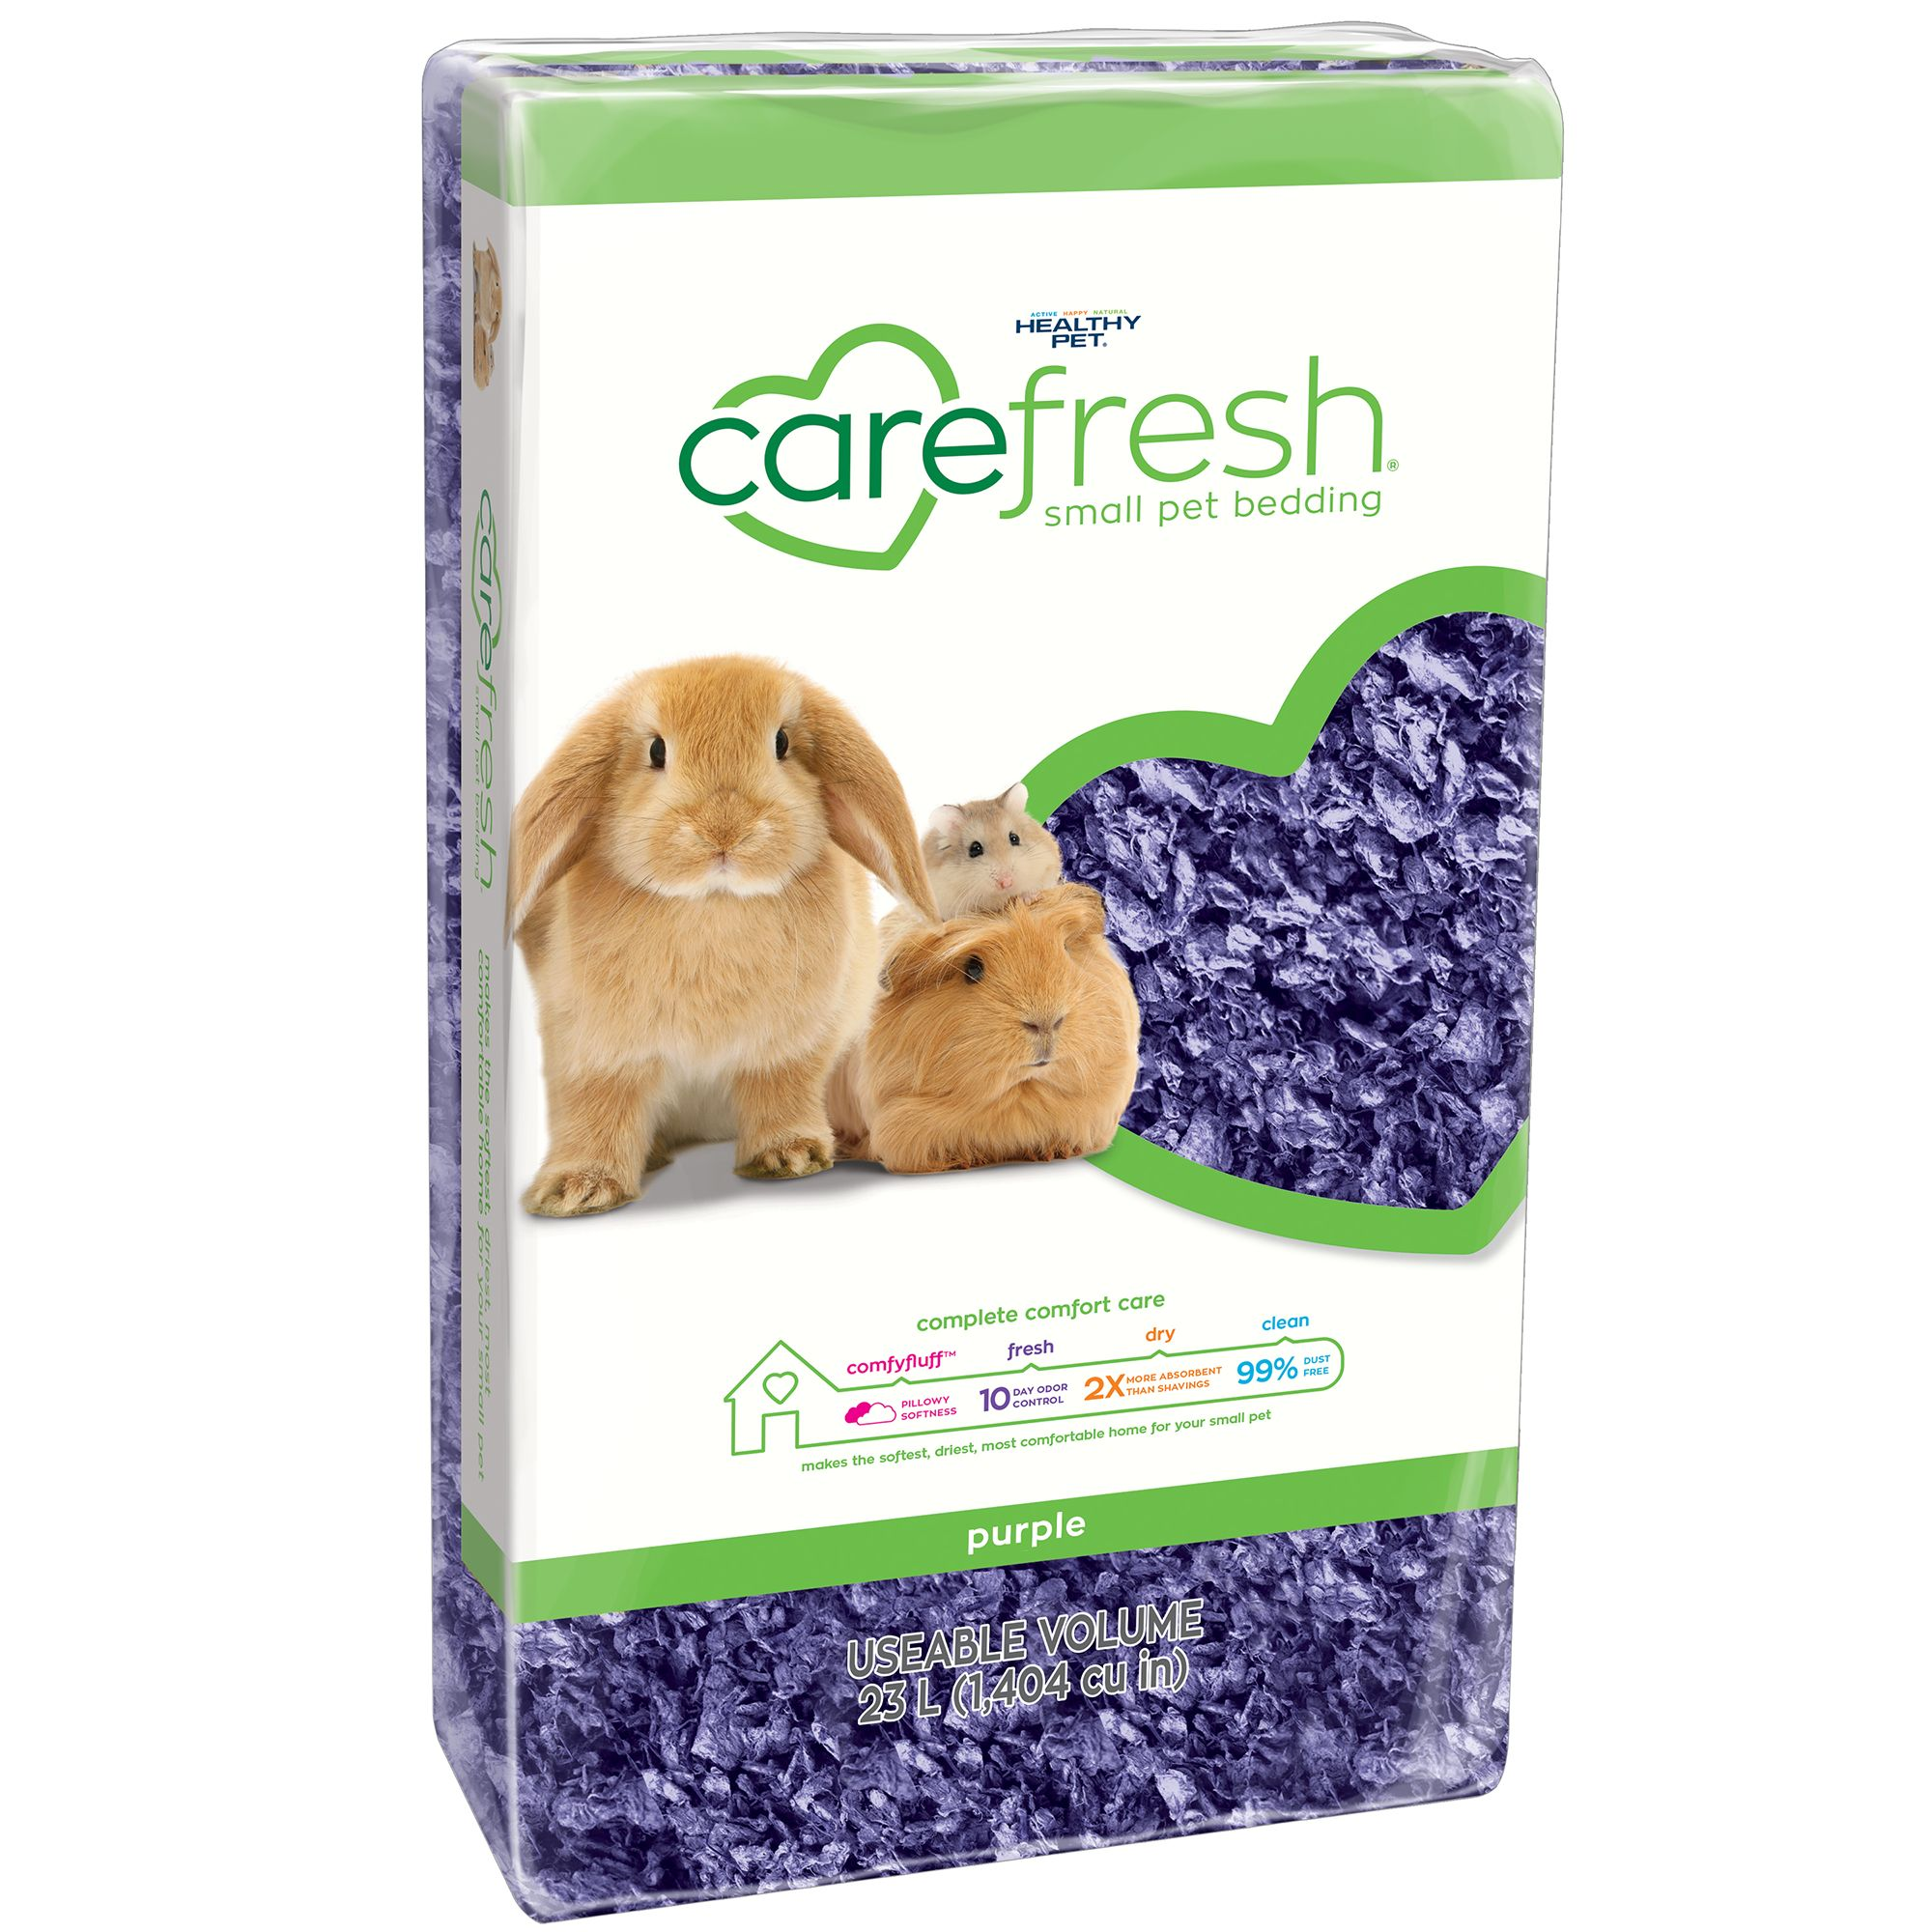 Carefresh Colorful Creations Small Pet Bedding Size 23 L Purple